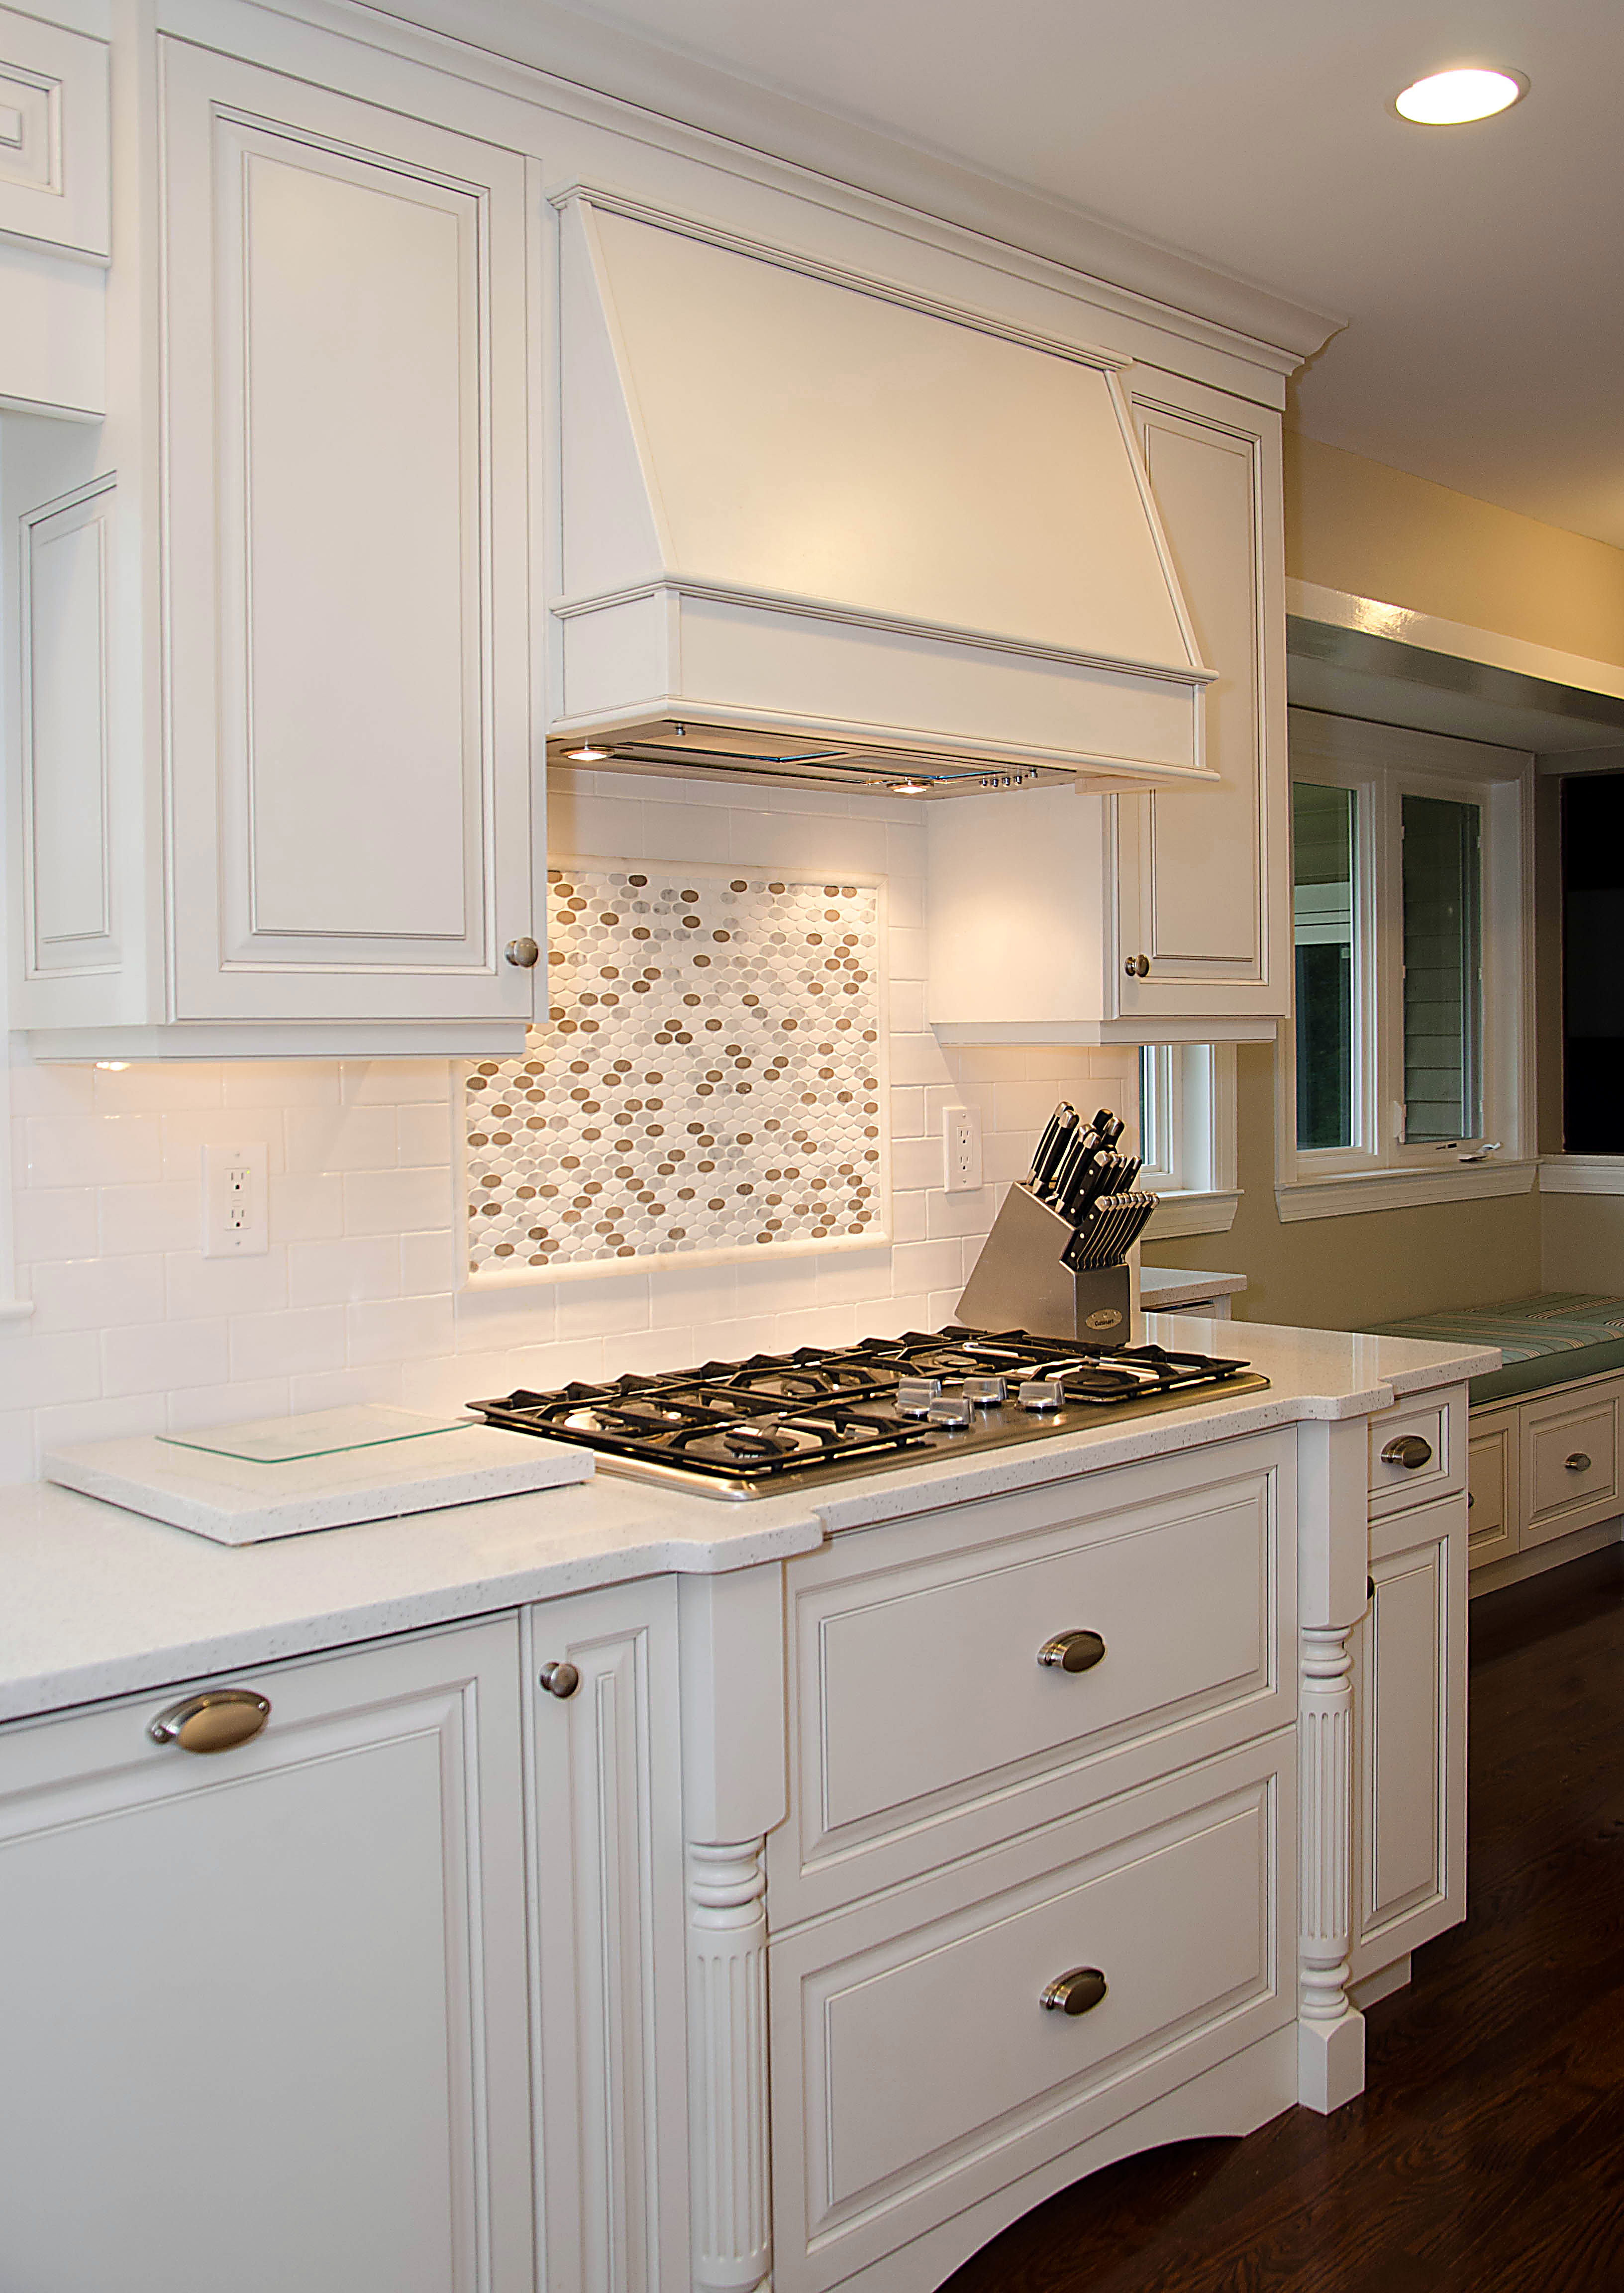 Kitchen canopy hood white kitchen stainless canopy hood - Commercial kitchen vent hood designs ...